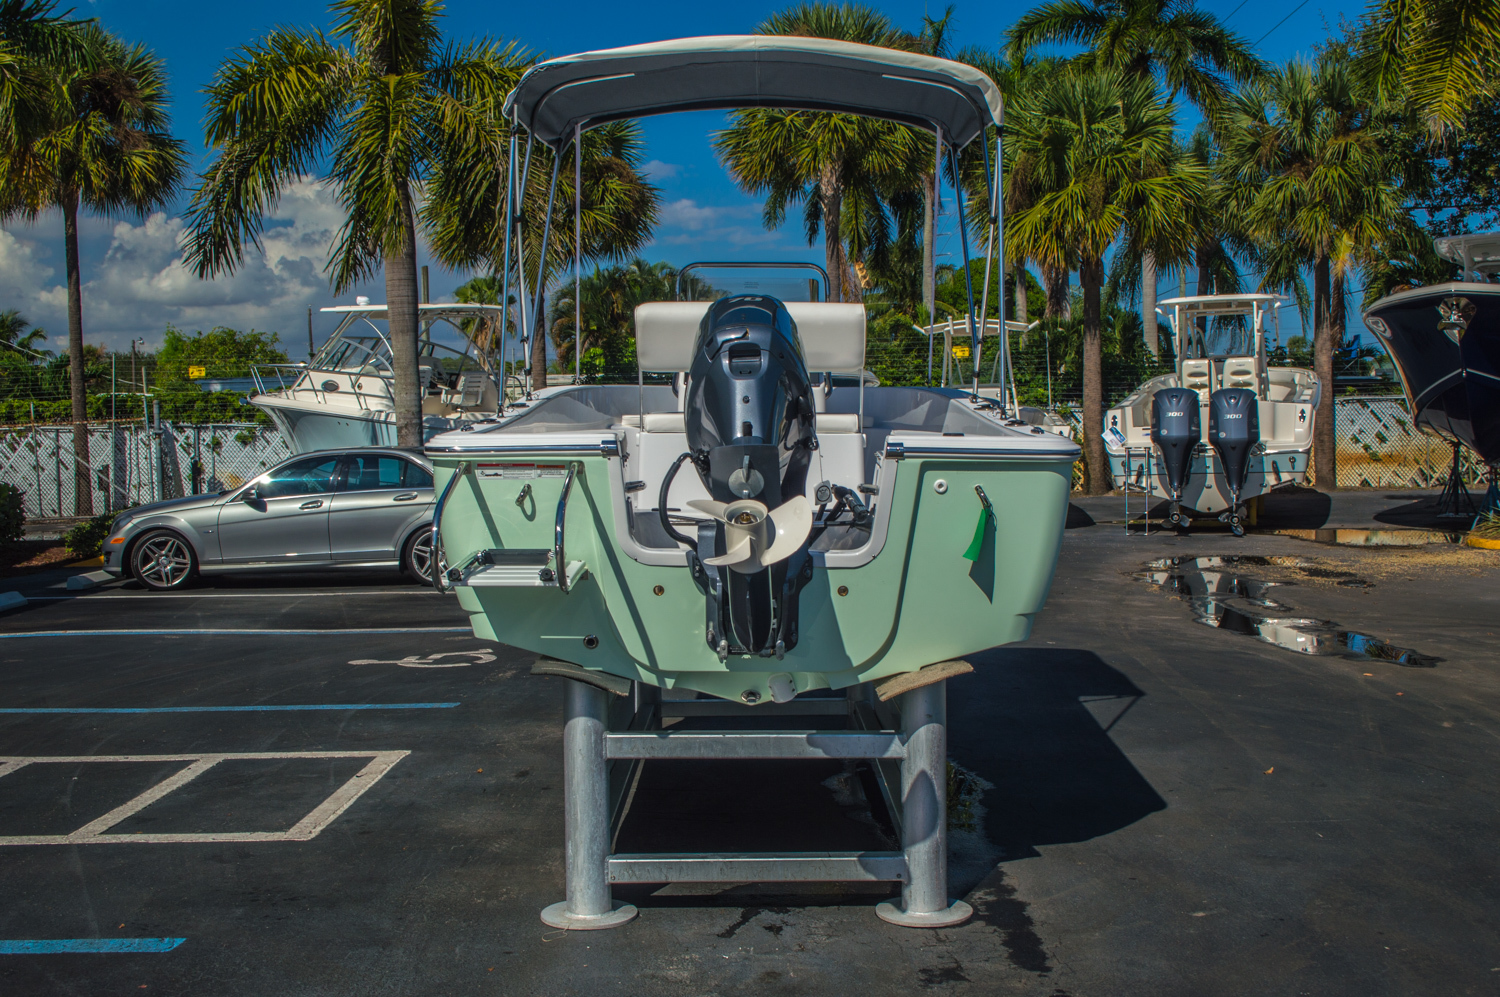 Thumbnail 6 for New 2016 Sportsman 17 Island Reef boat for sale in West Palm Beach, FL